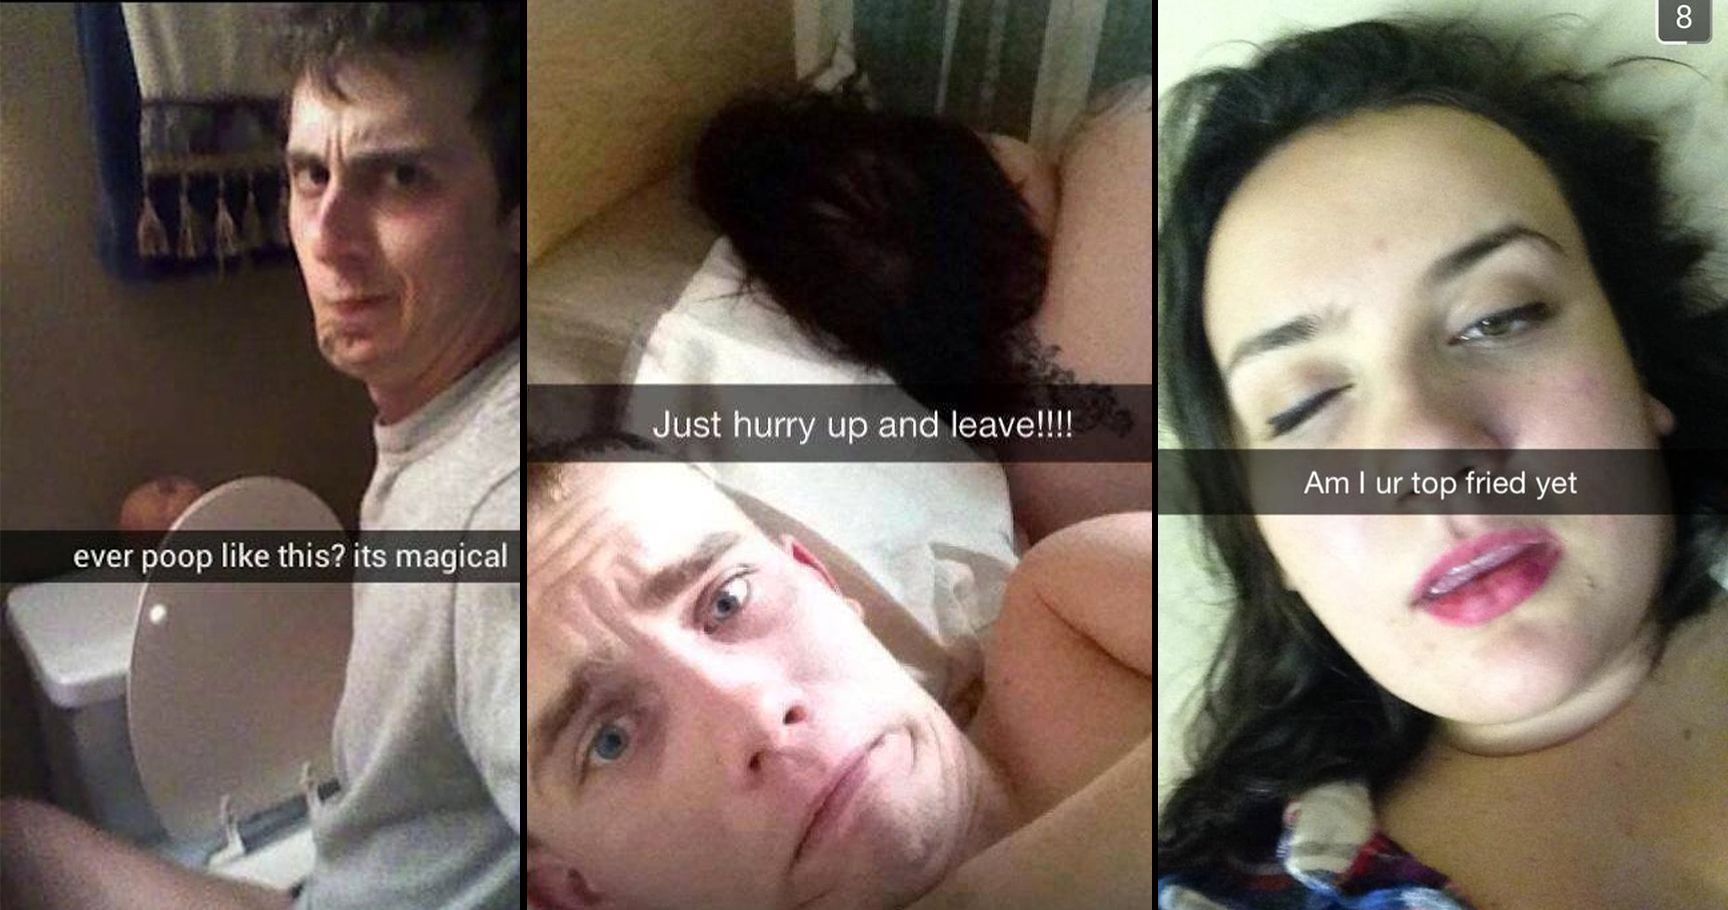 15 Jaw-Dropping Wasted Snapchats That Are So Damn Regrettable